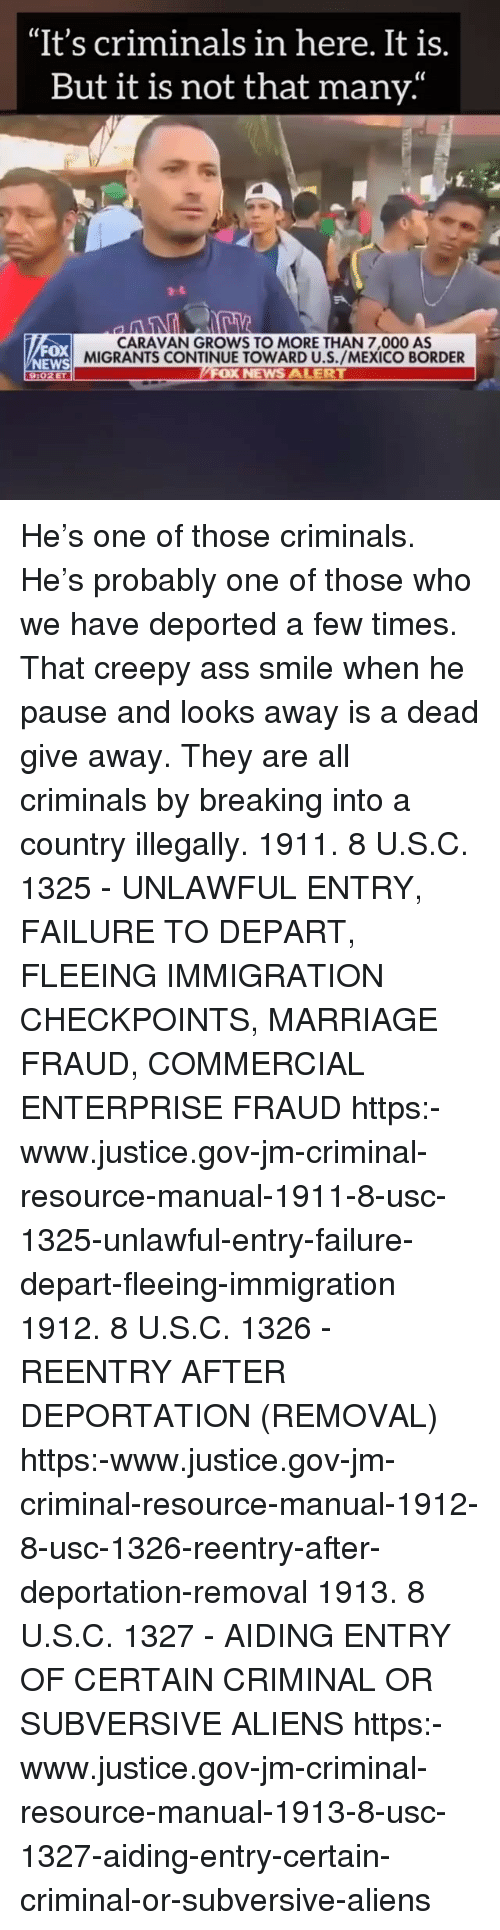 """Ass, Creepy, and Marriage: """"It's criminals in here. It is.  But it is not that many'  CARAVAN GROWS TO MORE THAN 7,000 AS  MIGRANTS CONTINUE TOWARD U.S./MEXICO BORDER  FOX  NEWS  9:02ET He's one of those criminals. He's probably one of those who we have deported a few times. That creepy ass smile when he pause and looks away is a dead give away. They are all criminals by breaking into a country illegally. 1911. 8 U.S.C. 1325 - UNLAWFUL ENTRY, FAILURE TO DEPART, FLEEING IMMIGRATION CHECKPOINTS, MARRIAGE FRAUD, COMMERCIAL ENTERPRISE FRAUD https:-www.justice.gov-jm-criminal-resource-manual-1911-8-usc-1325-unlawful-entry-failure-depart-fleeing-immigration 1912. 8 U.S.C. 1326 - REENTRY AFTER DEPORTATION (REMOVAL) https:-www.justice.gov-jm-criminal-resource-manual-1912-8-usc-1326-reentry-after-deportation-removal 1913. 8 U.S.C. 1327 - AIDING ENTRY OF CERTAIN CRIMINAL OR SUBVERSIVE ALIENS https:-www.justice.gov-jm-criminal-resource-manual-1913-8-usc-1327-aiding-entry-certain-criminal-or-subversive-aliens"""